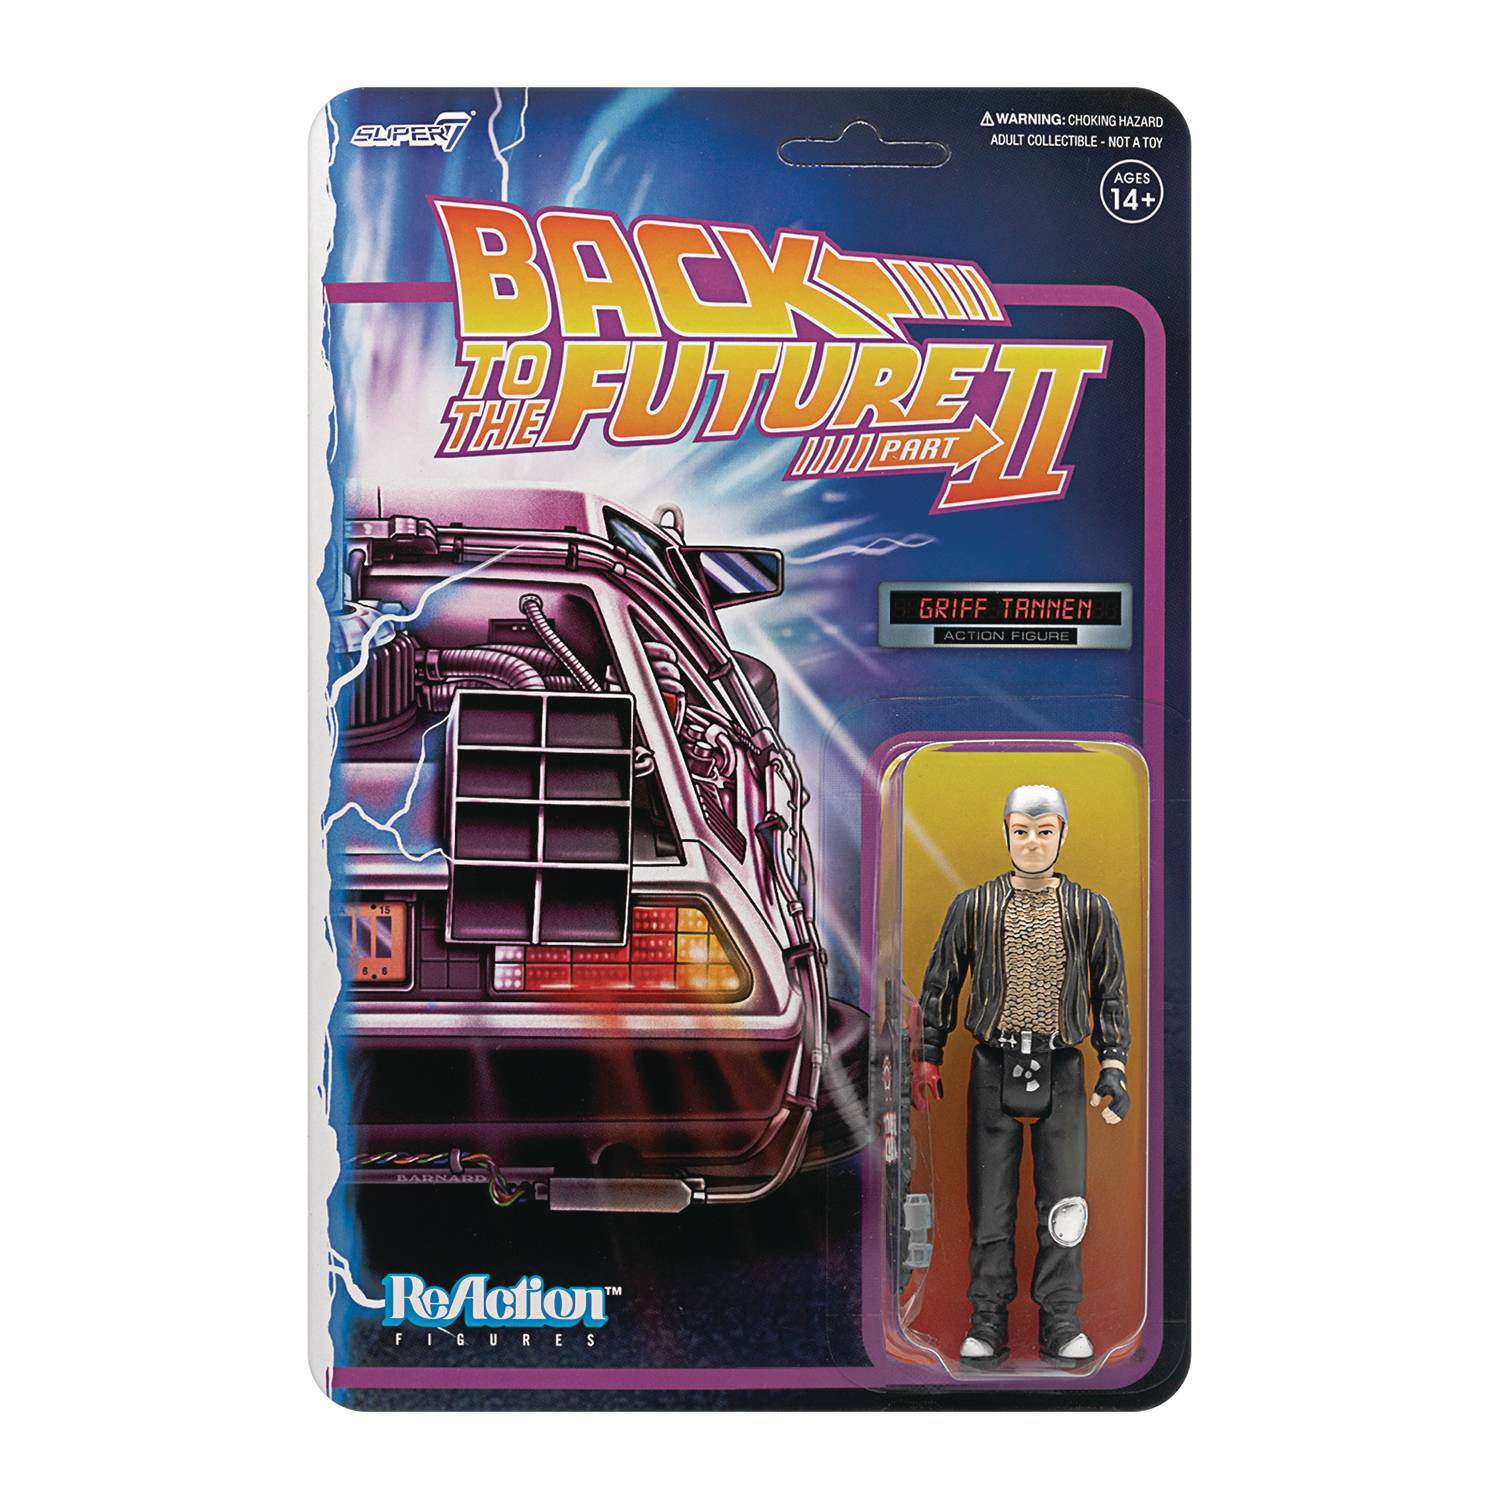 ReAction Figures - Back to the Future part II - Griff Tannen